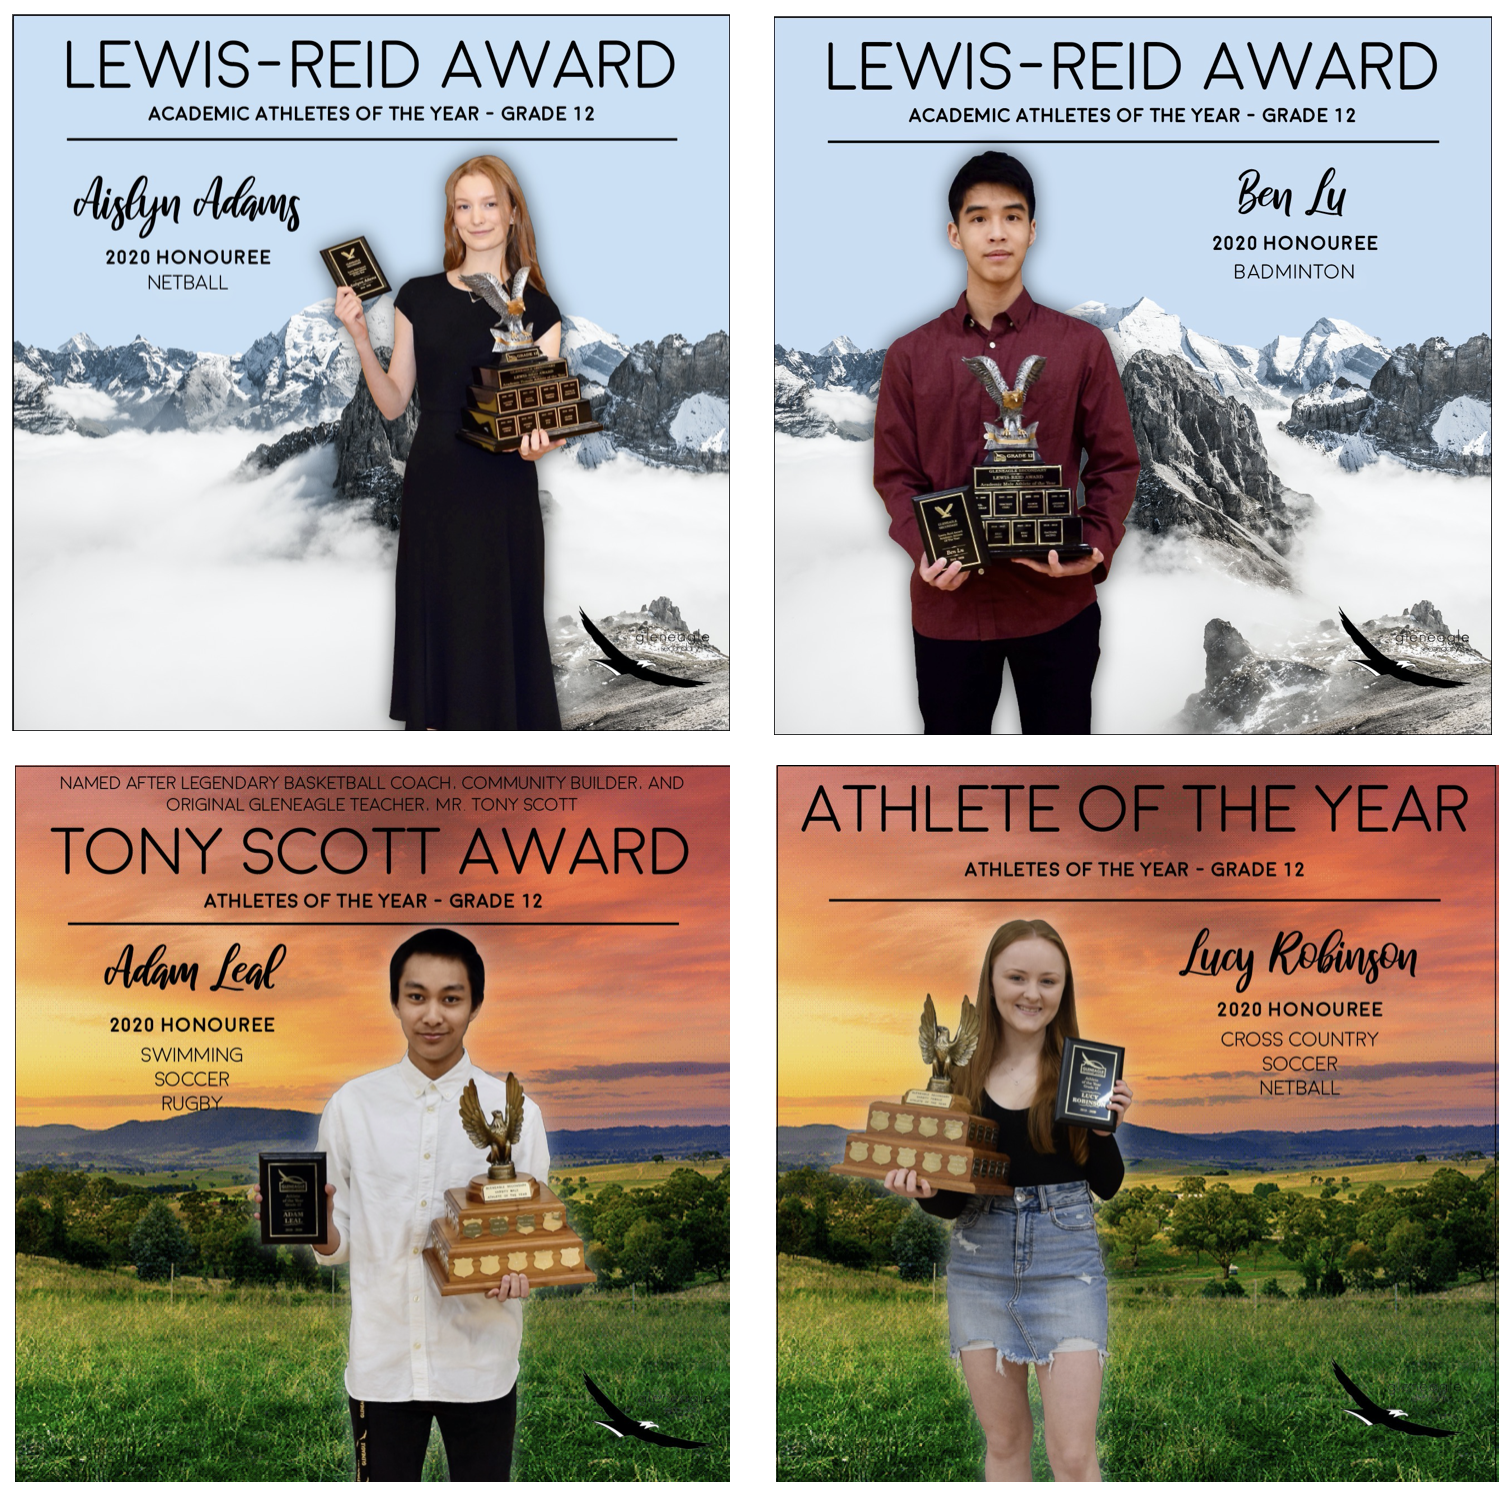 Grade 12 athletes of the year and Lewis-Reid award winners